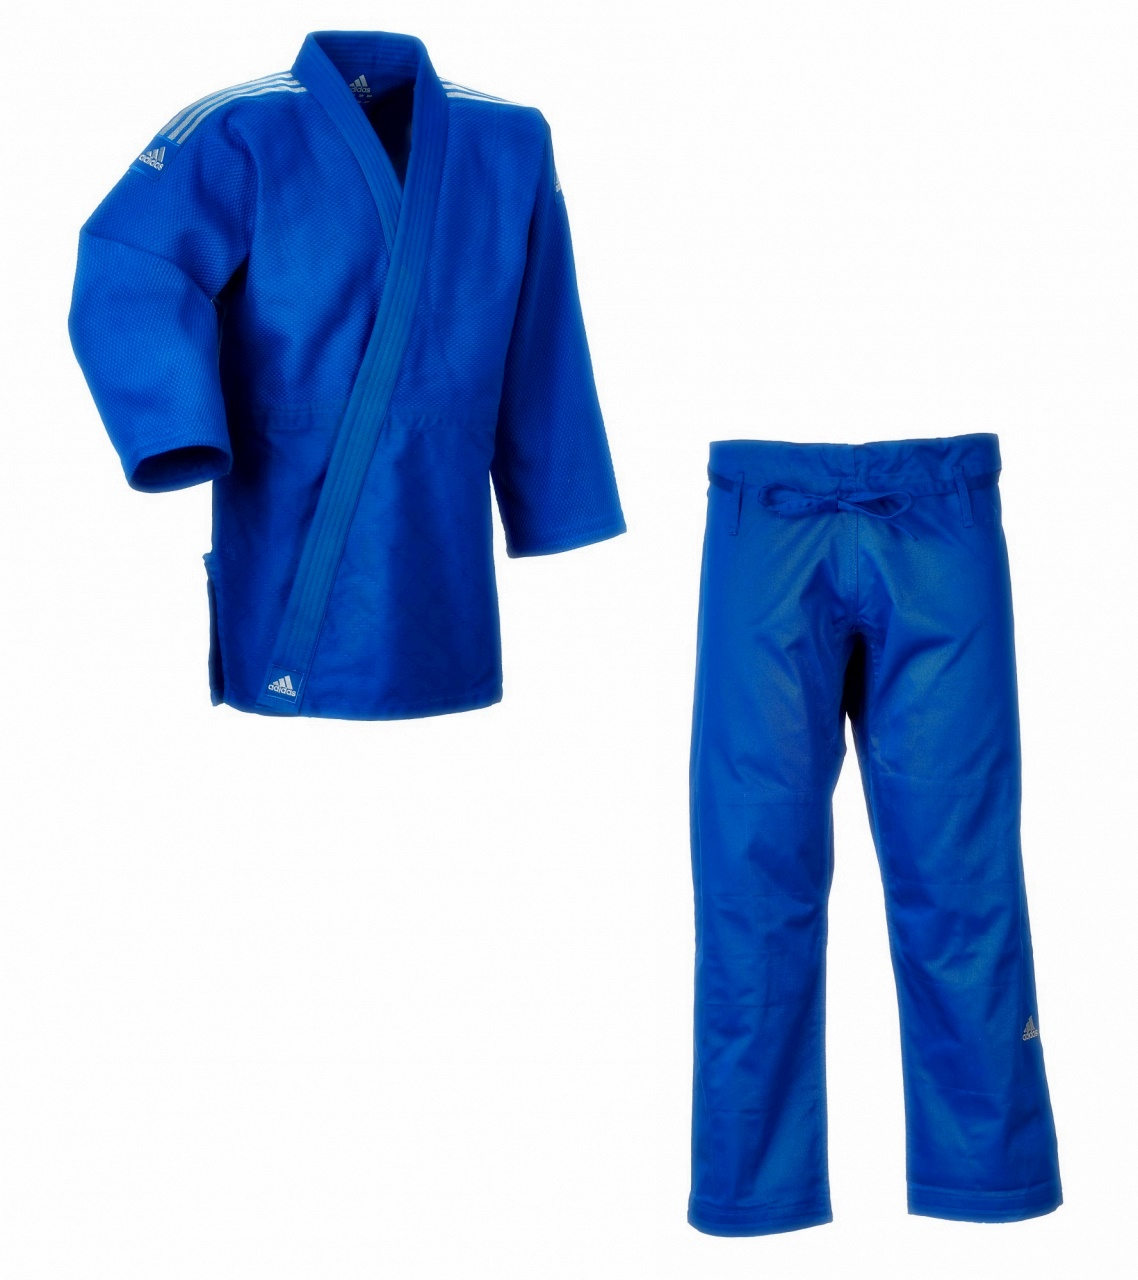 adidas wettkampf judoanzug j650 contest blau judo. Black Bedroom Furniture Sets. Home Design Ideas